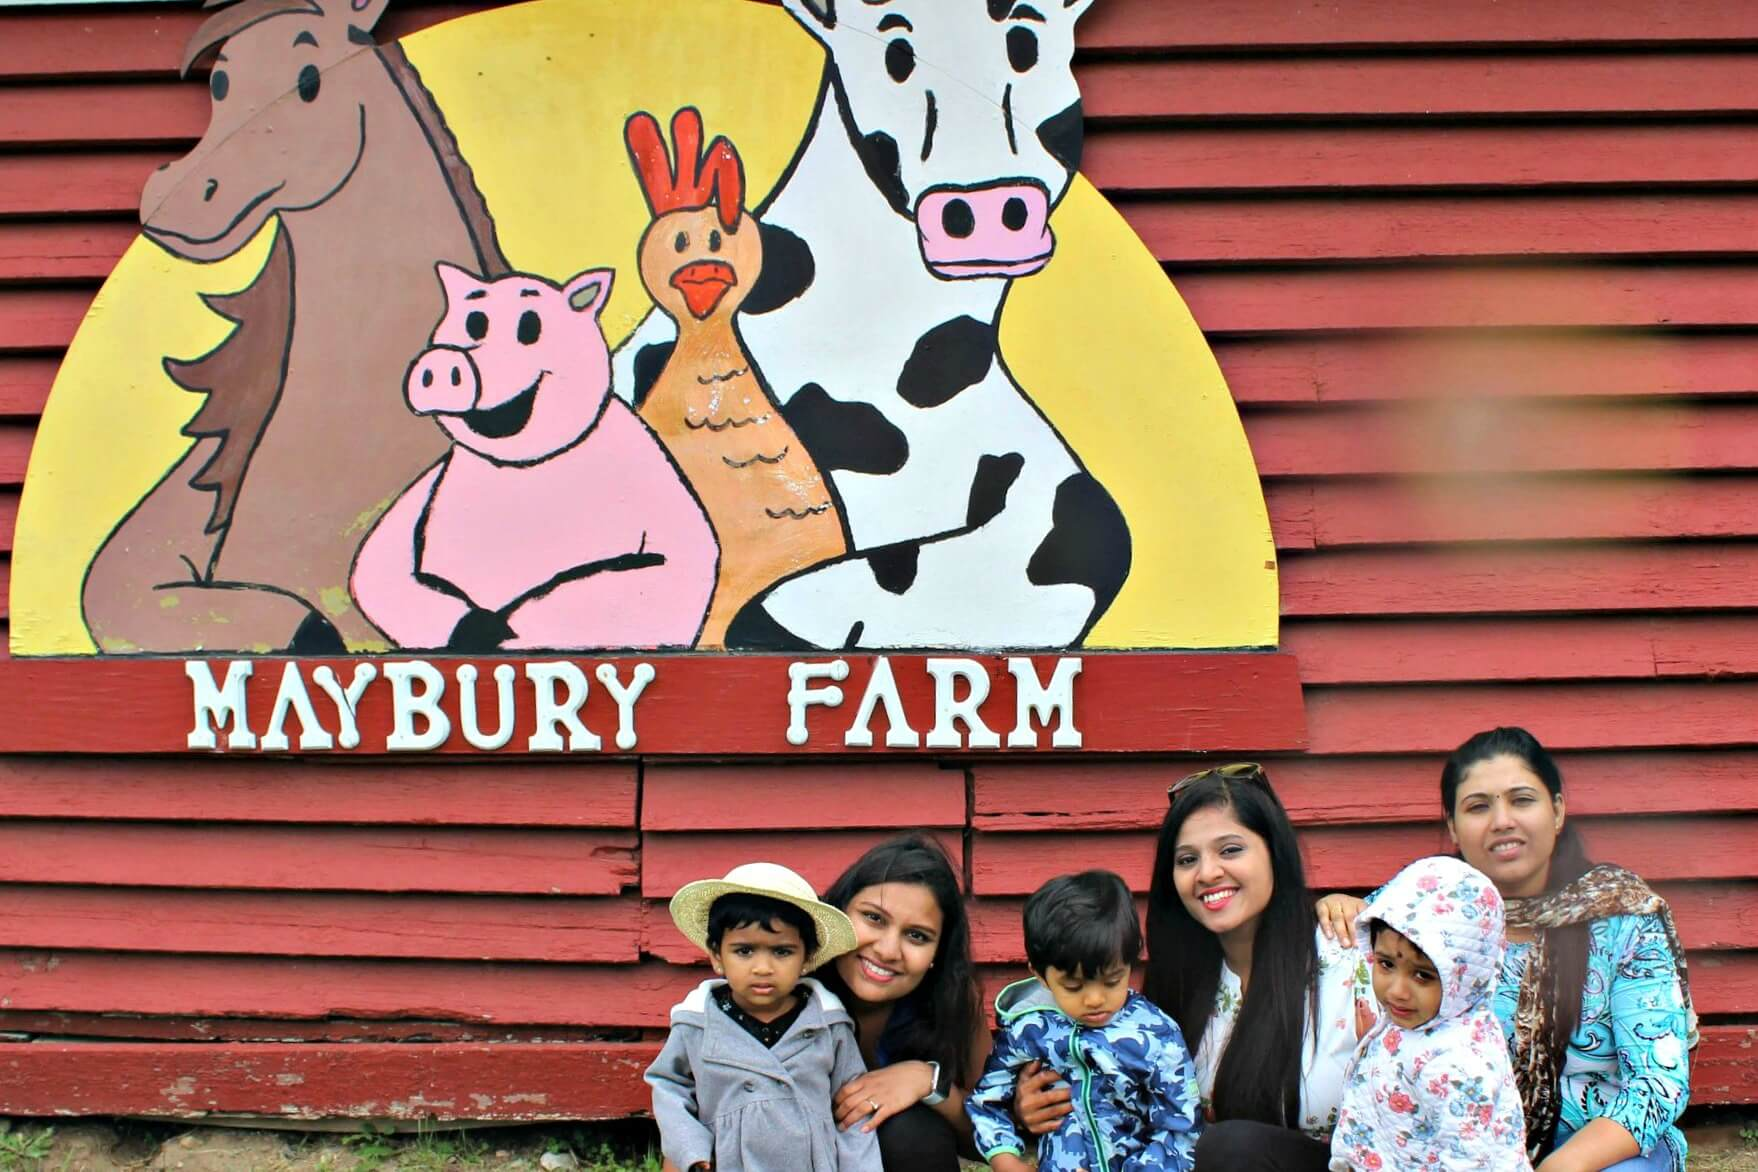 Maybury Farm Opening Day